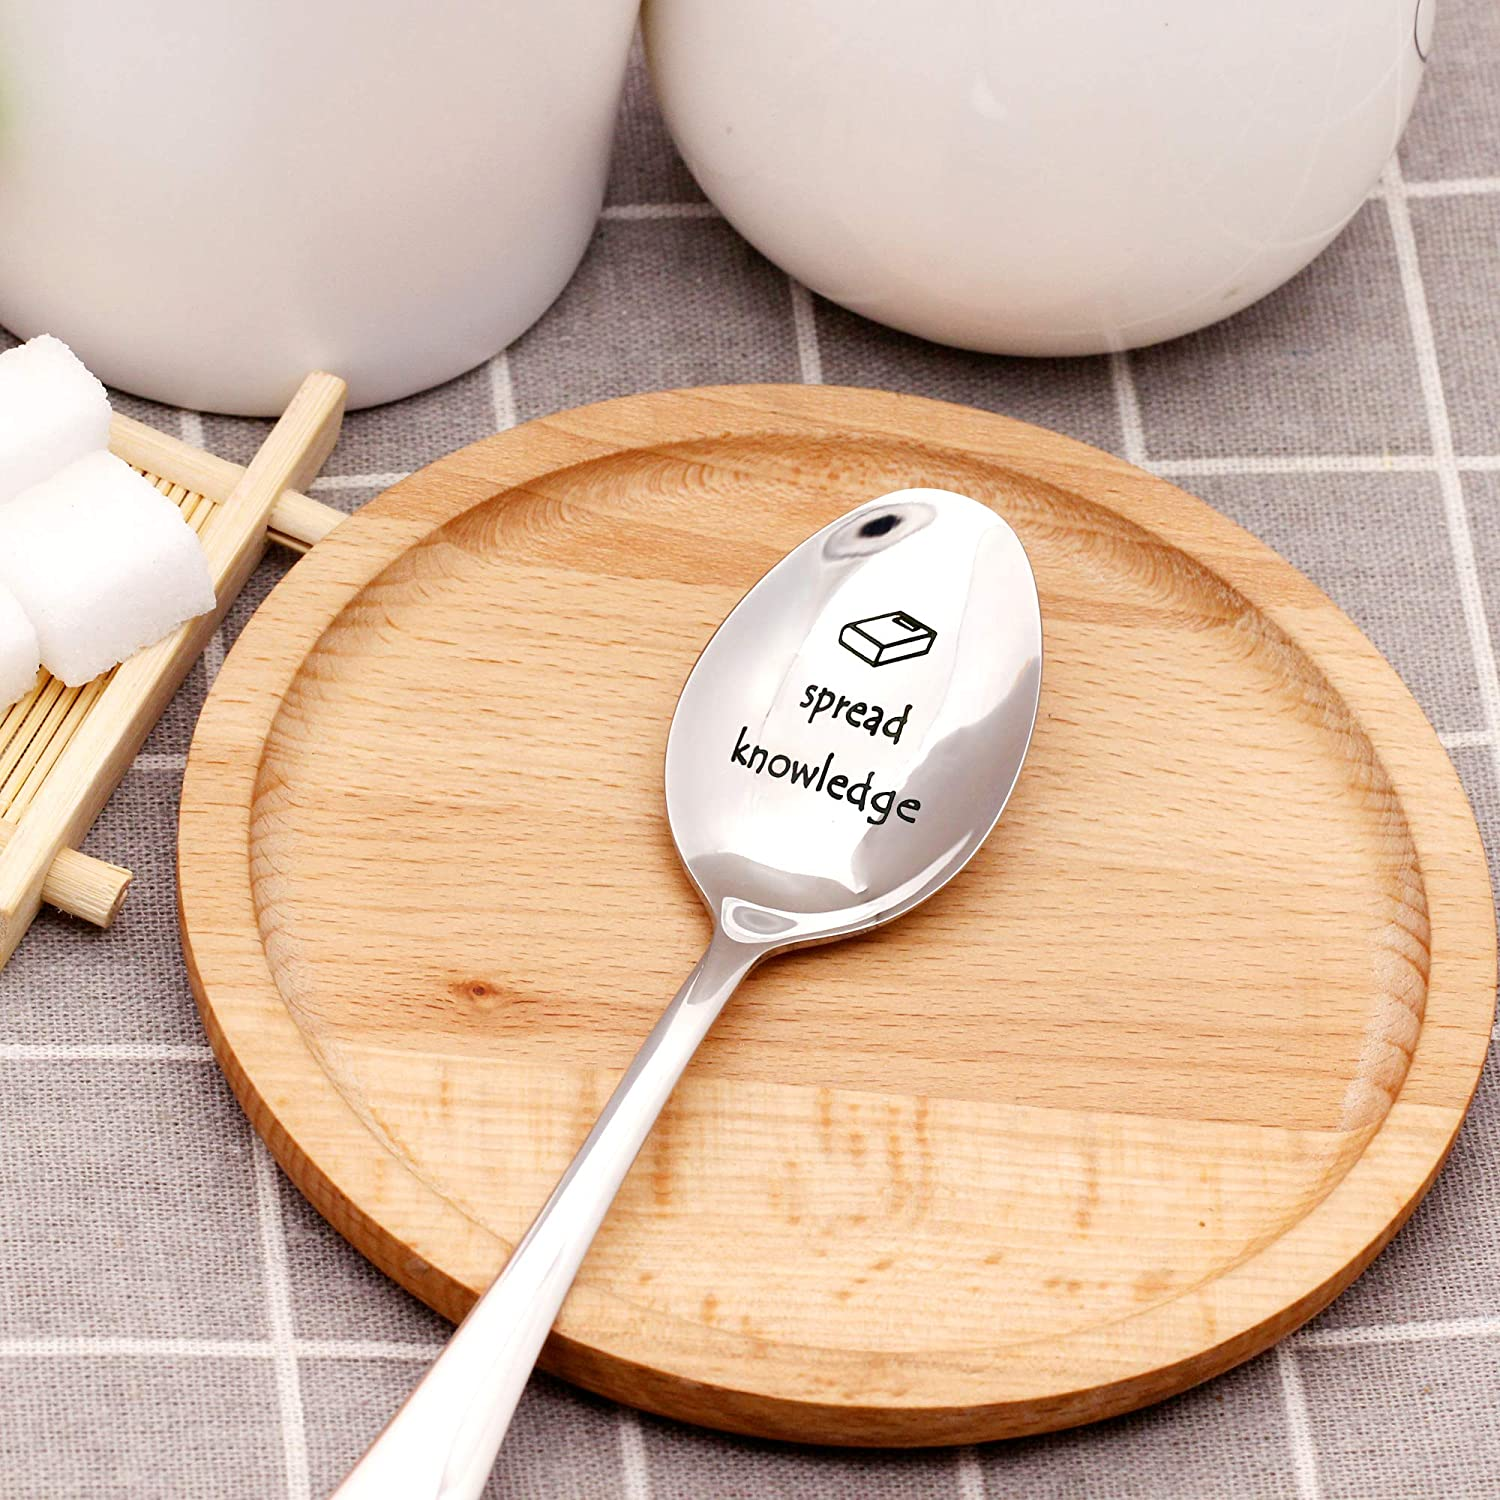 Thank You Teacher Graduation Teachers Day Gifts from Students Soup Spoon,Dinner Spoon Tea Spoon,Coffee Spoon,Ice Cream Spoon 304 Stainless Steel #1 Teacher